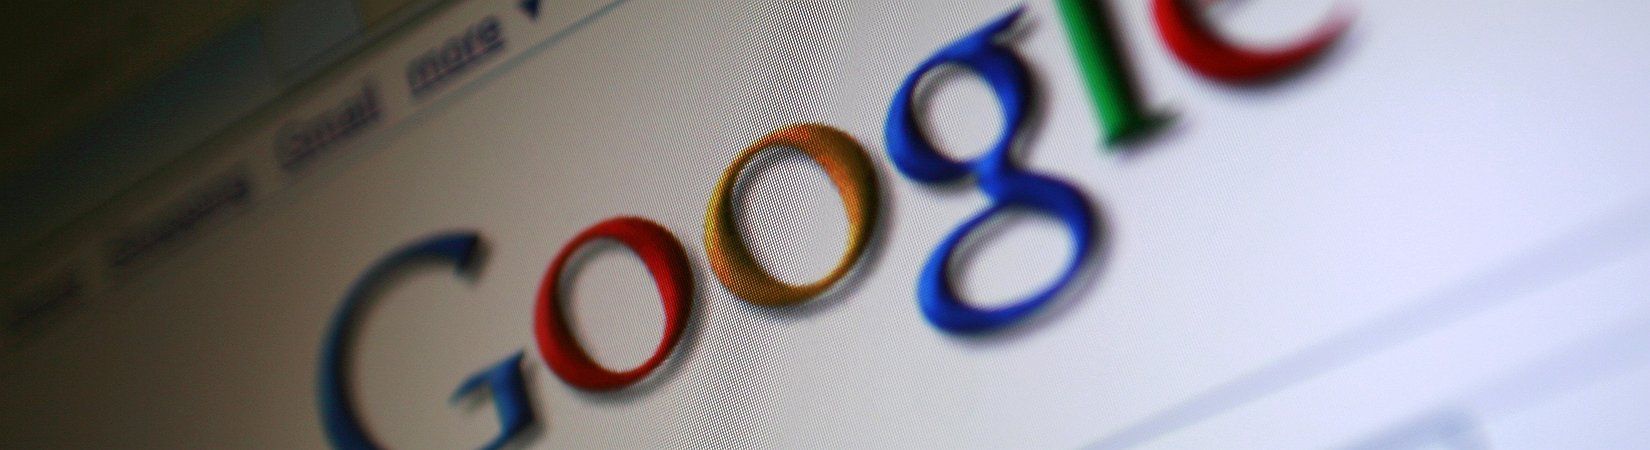 Google and Facebook claim more than $100b of global advertising market